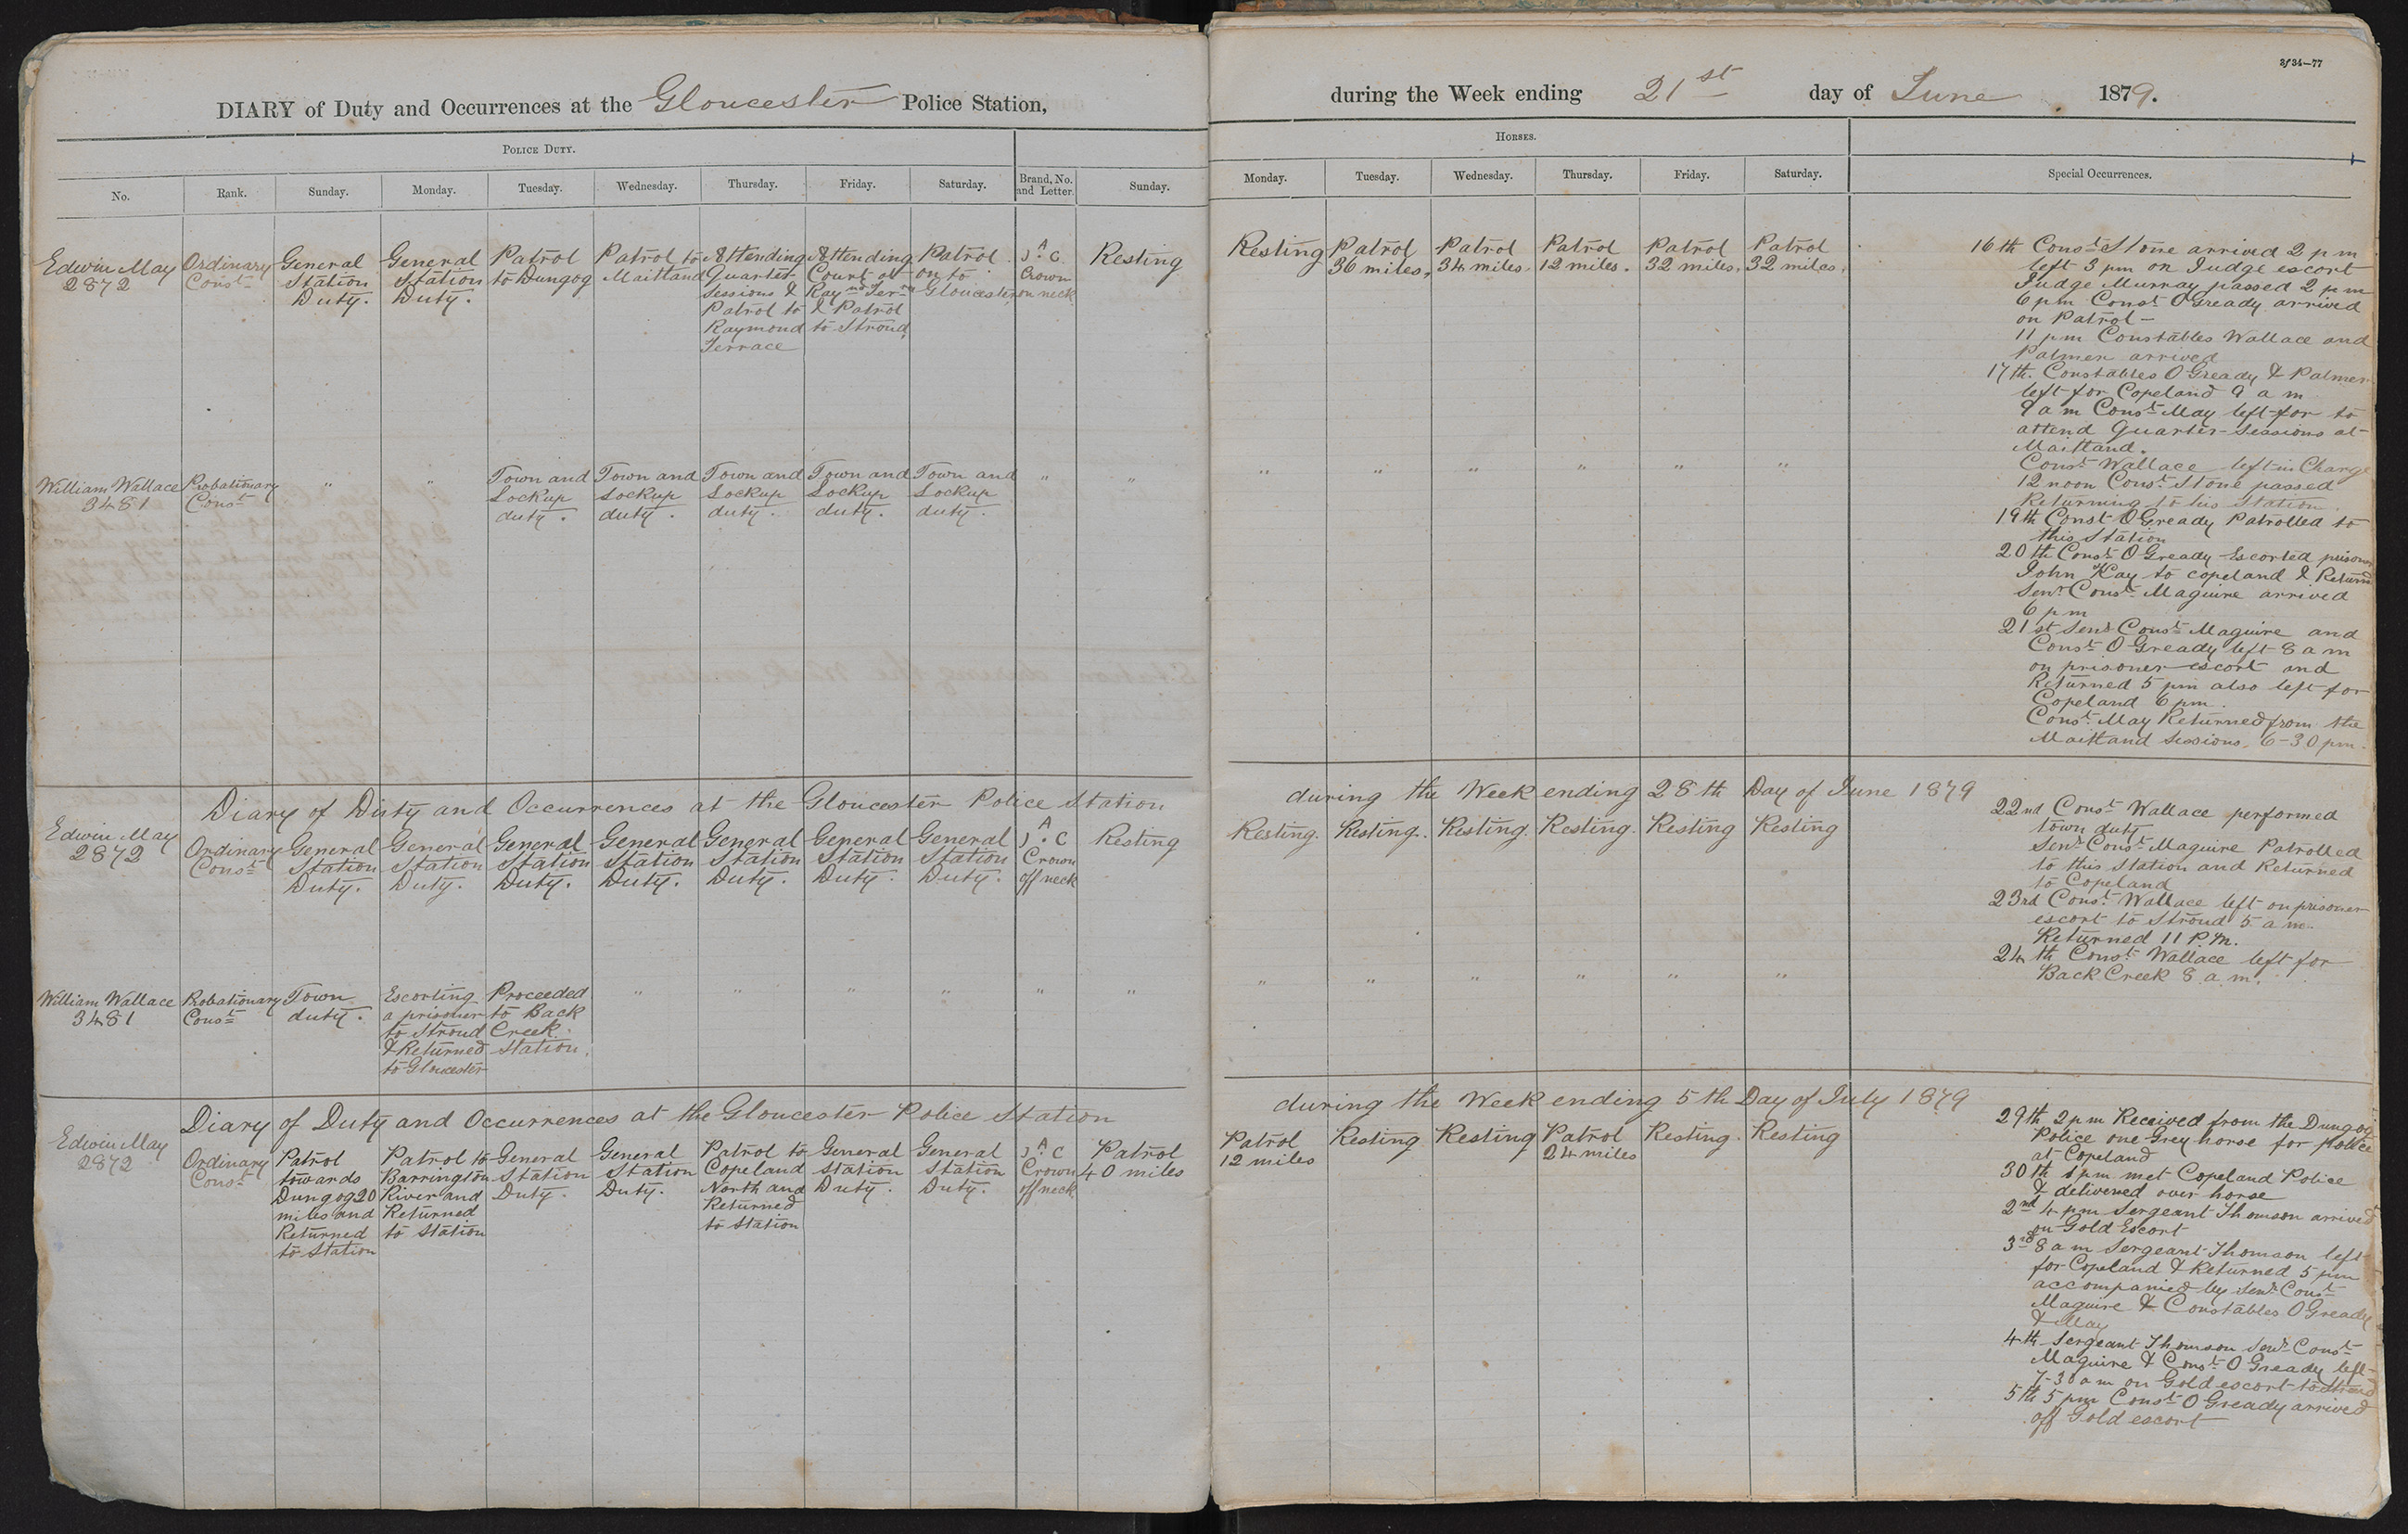 Diary of duty and occurrences at the Gloucester Police Station during the week ending the 21st day of June 1879